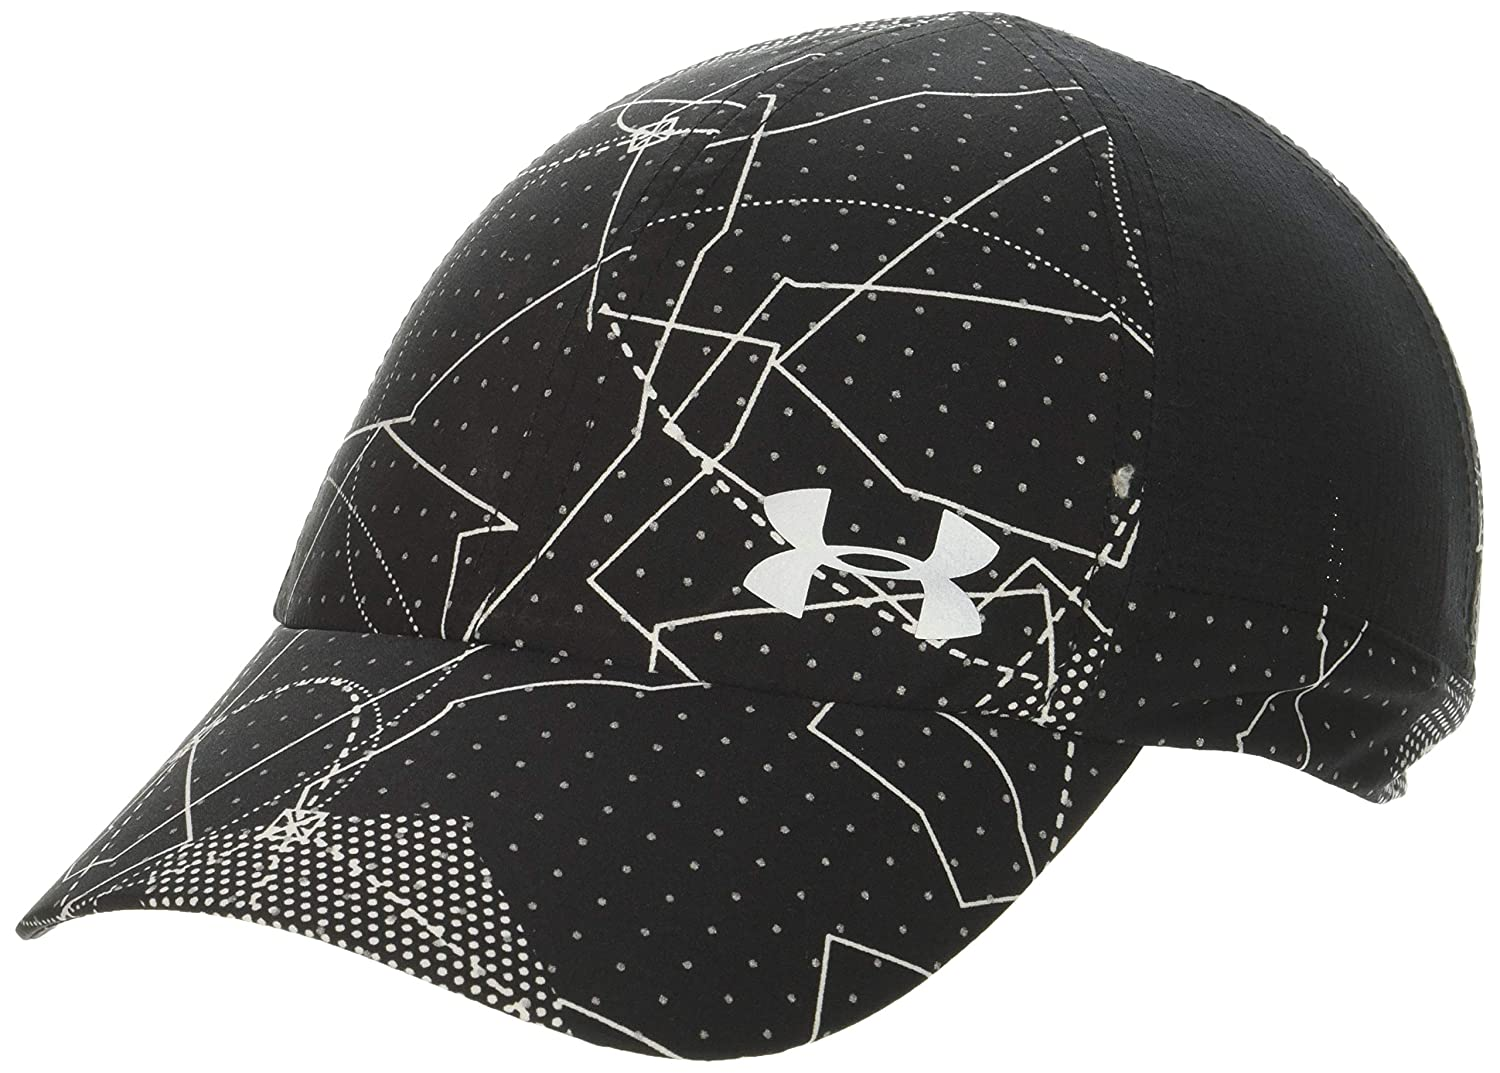 newest 6bc2b be57c Amazon.com  Under Armour Women s Thread Borne Fly By Cap, Black  (002) Silver, One Size  Sports   Outdoors